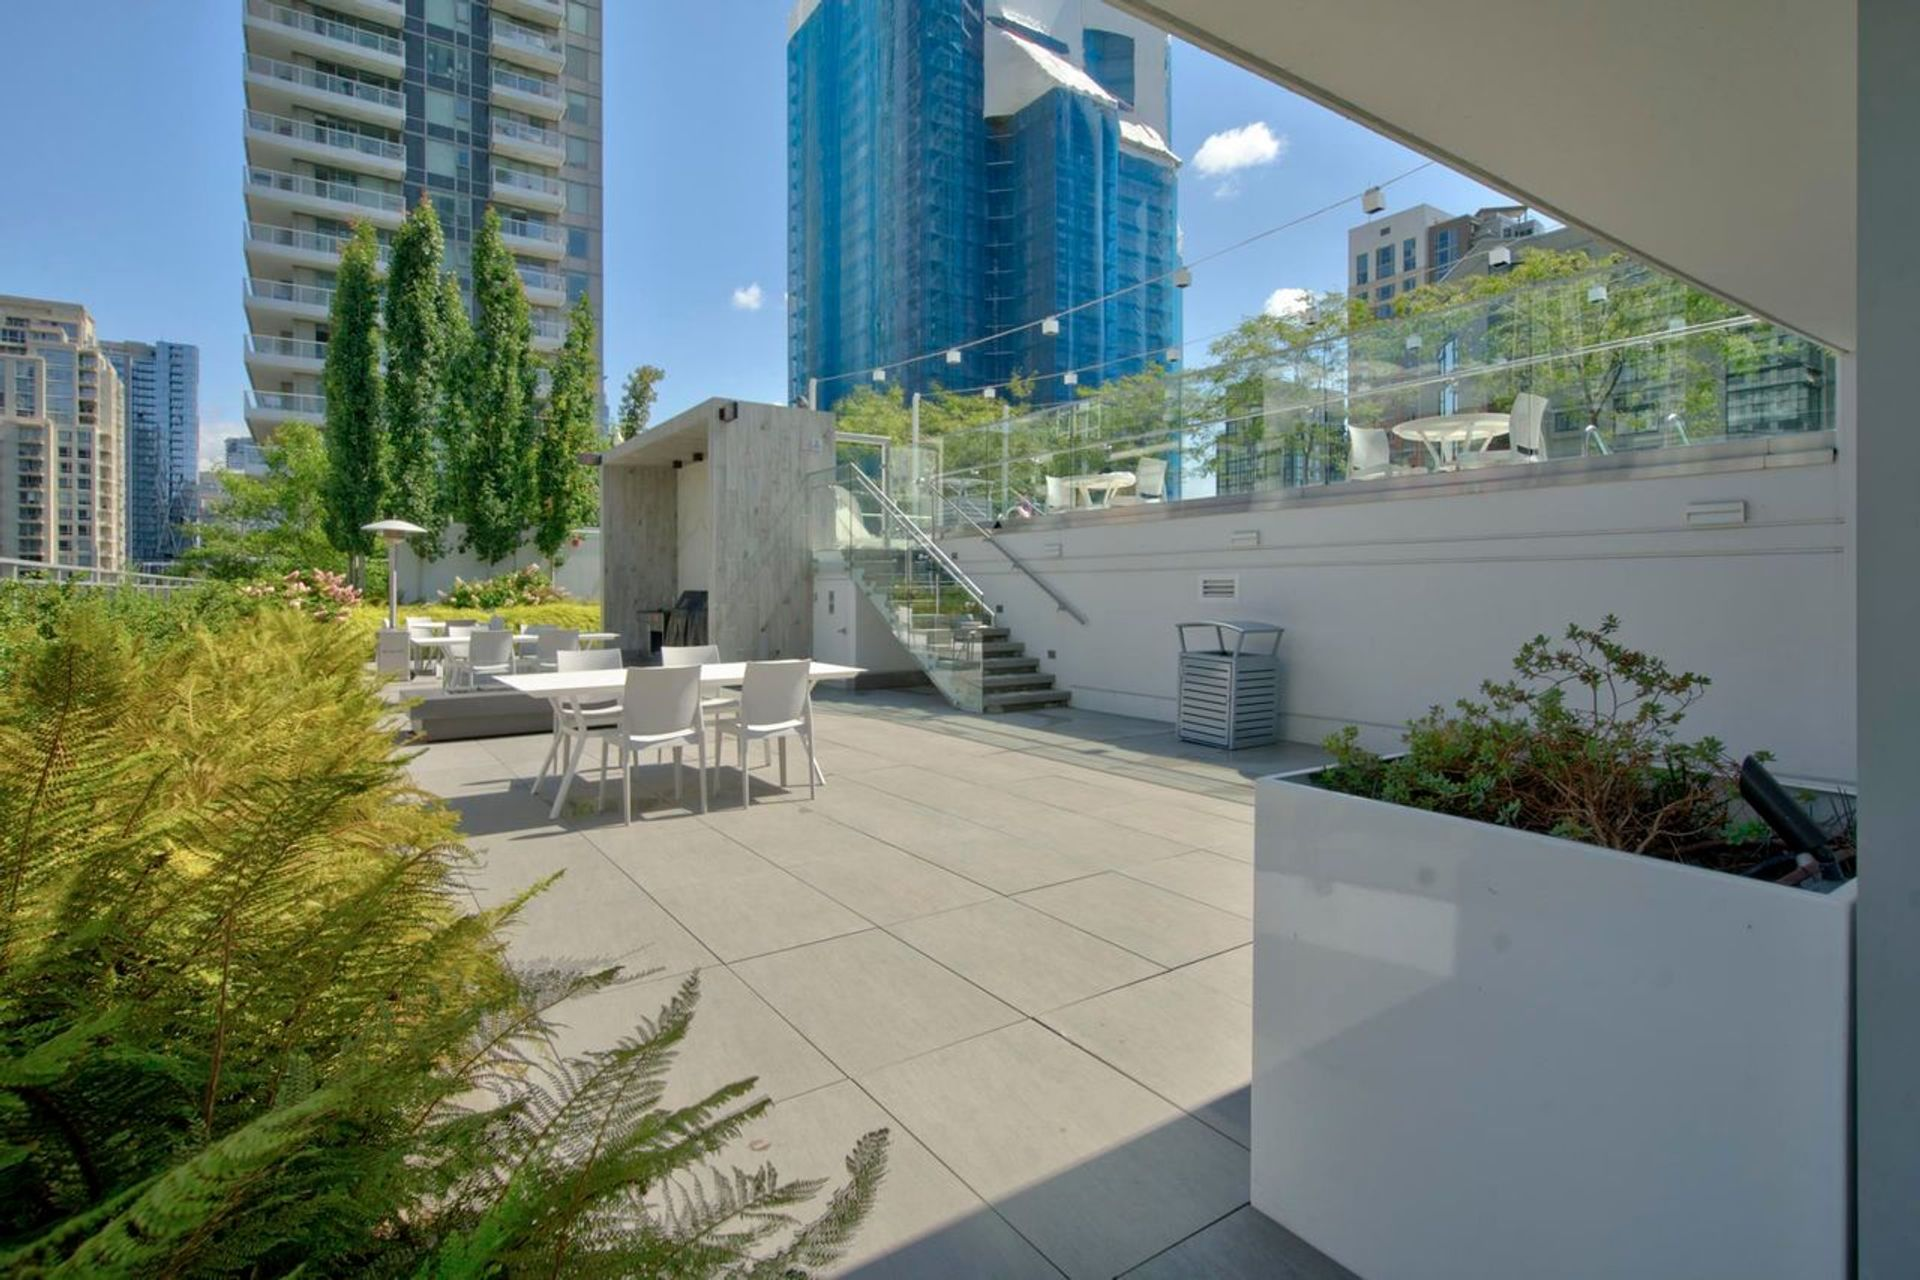 499-pacific-street-yaletown-vancouver-west-27 at 801 - 499 Pacific Street, Yaletown, Vancouver West